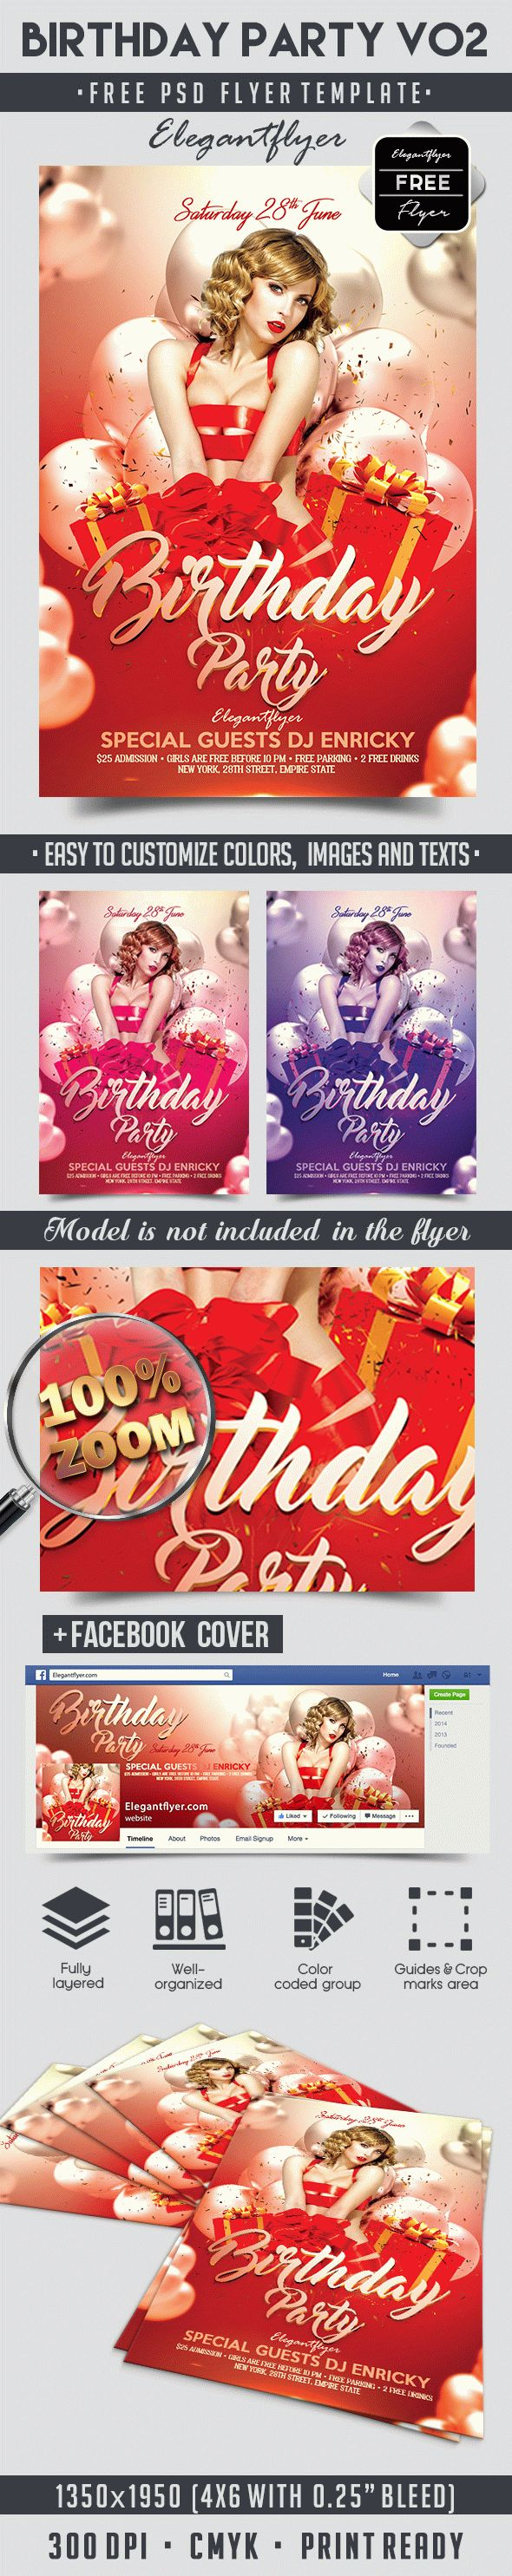 flyers for birthday parties